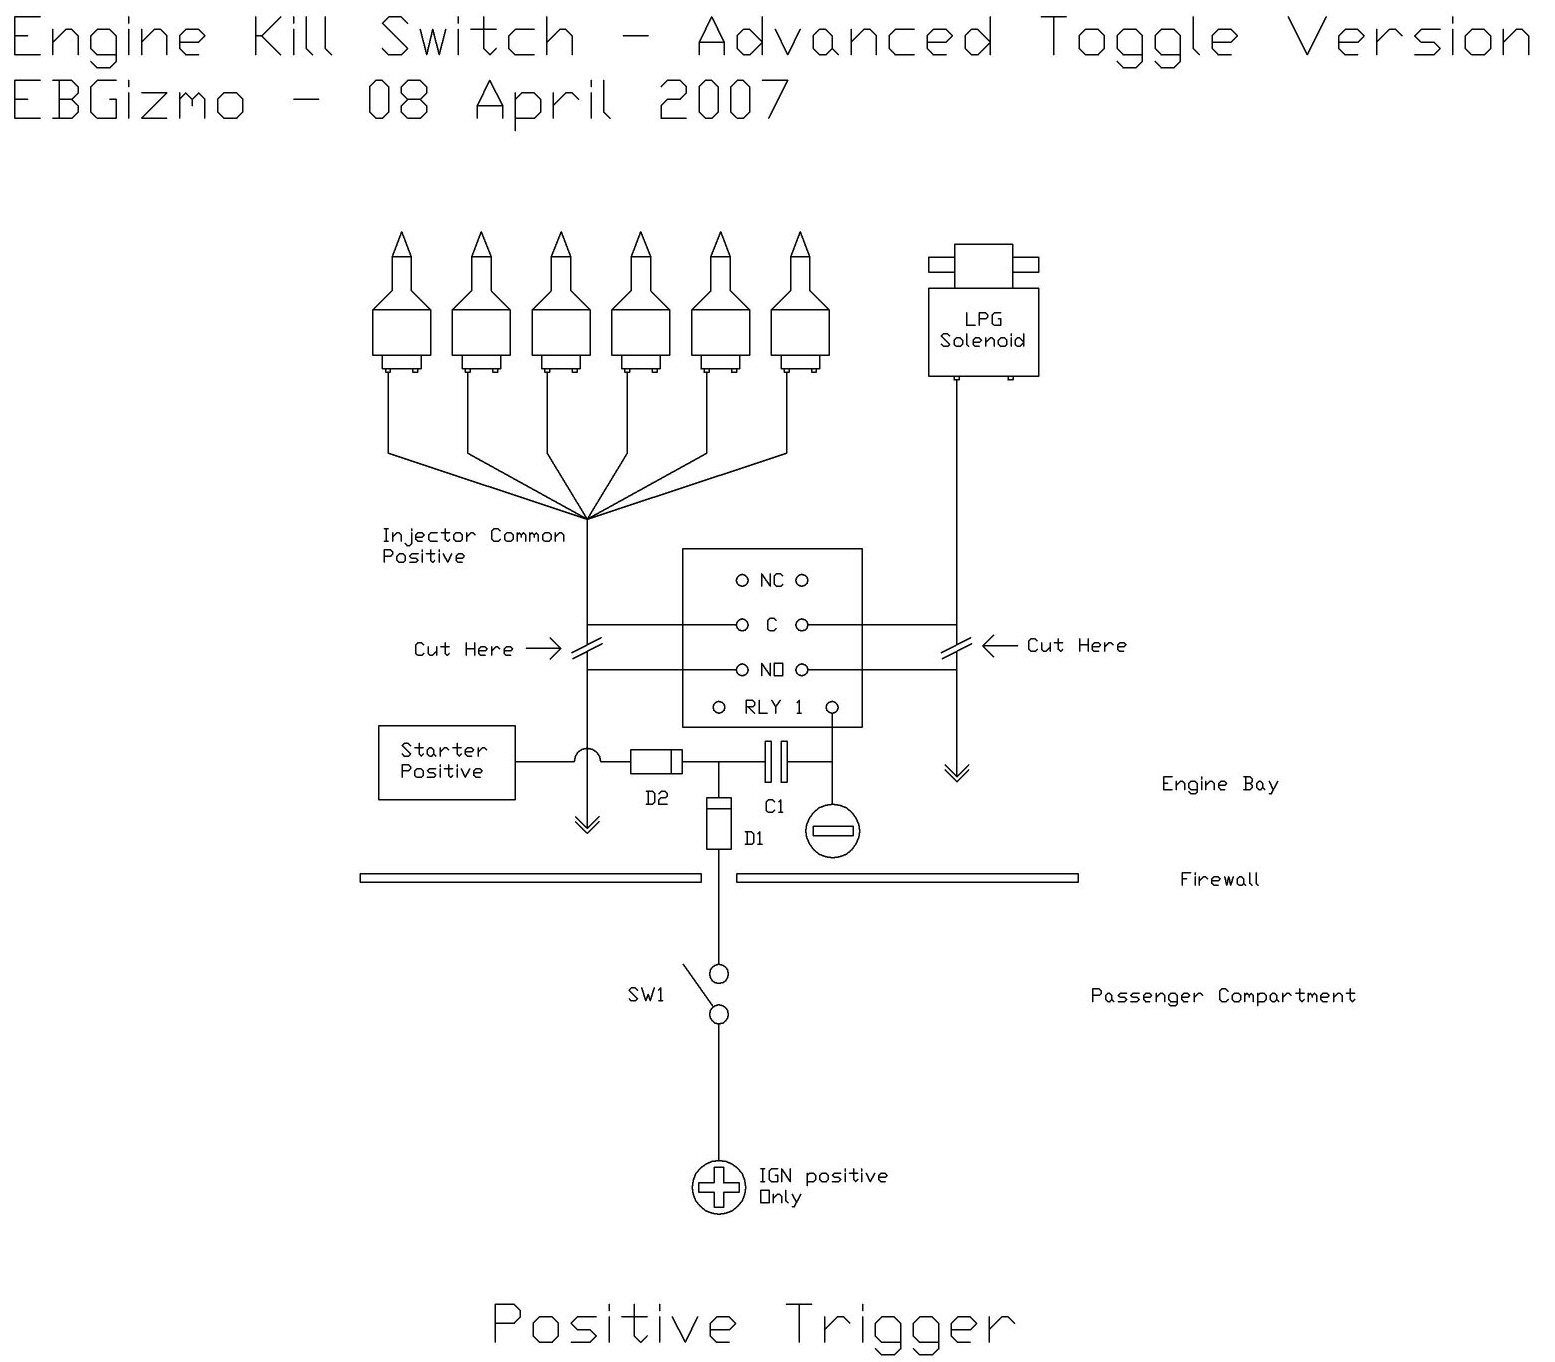 Kill Switch Advanced Toggle Print Layout (4)-000001.jpg